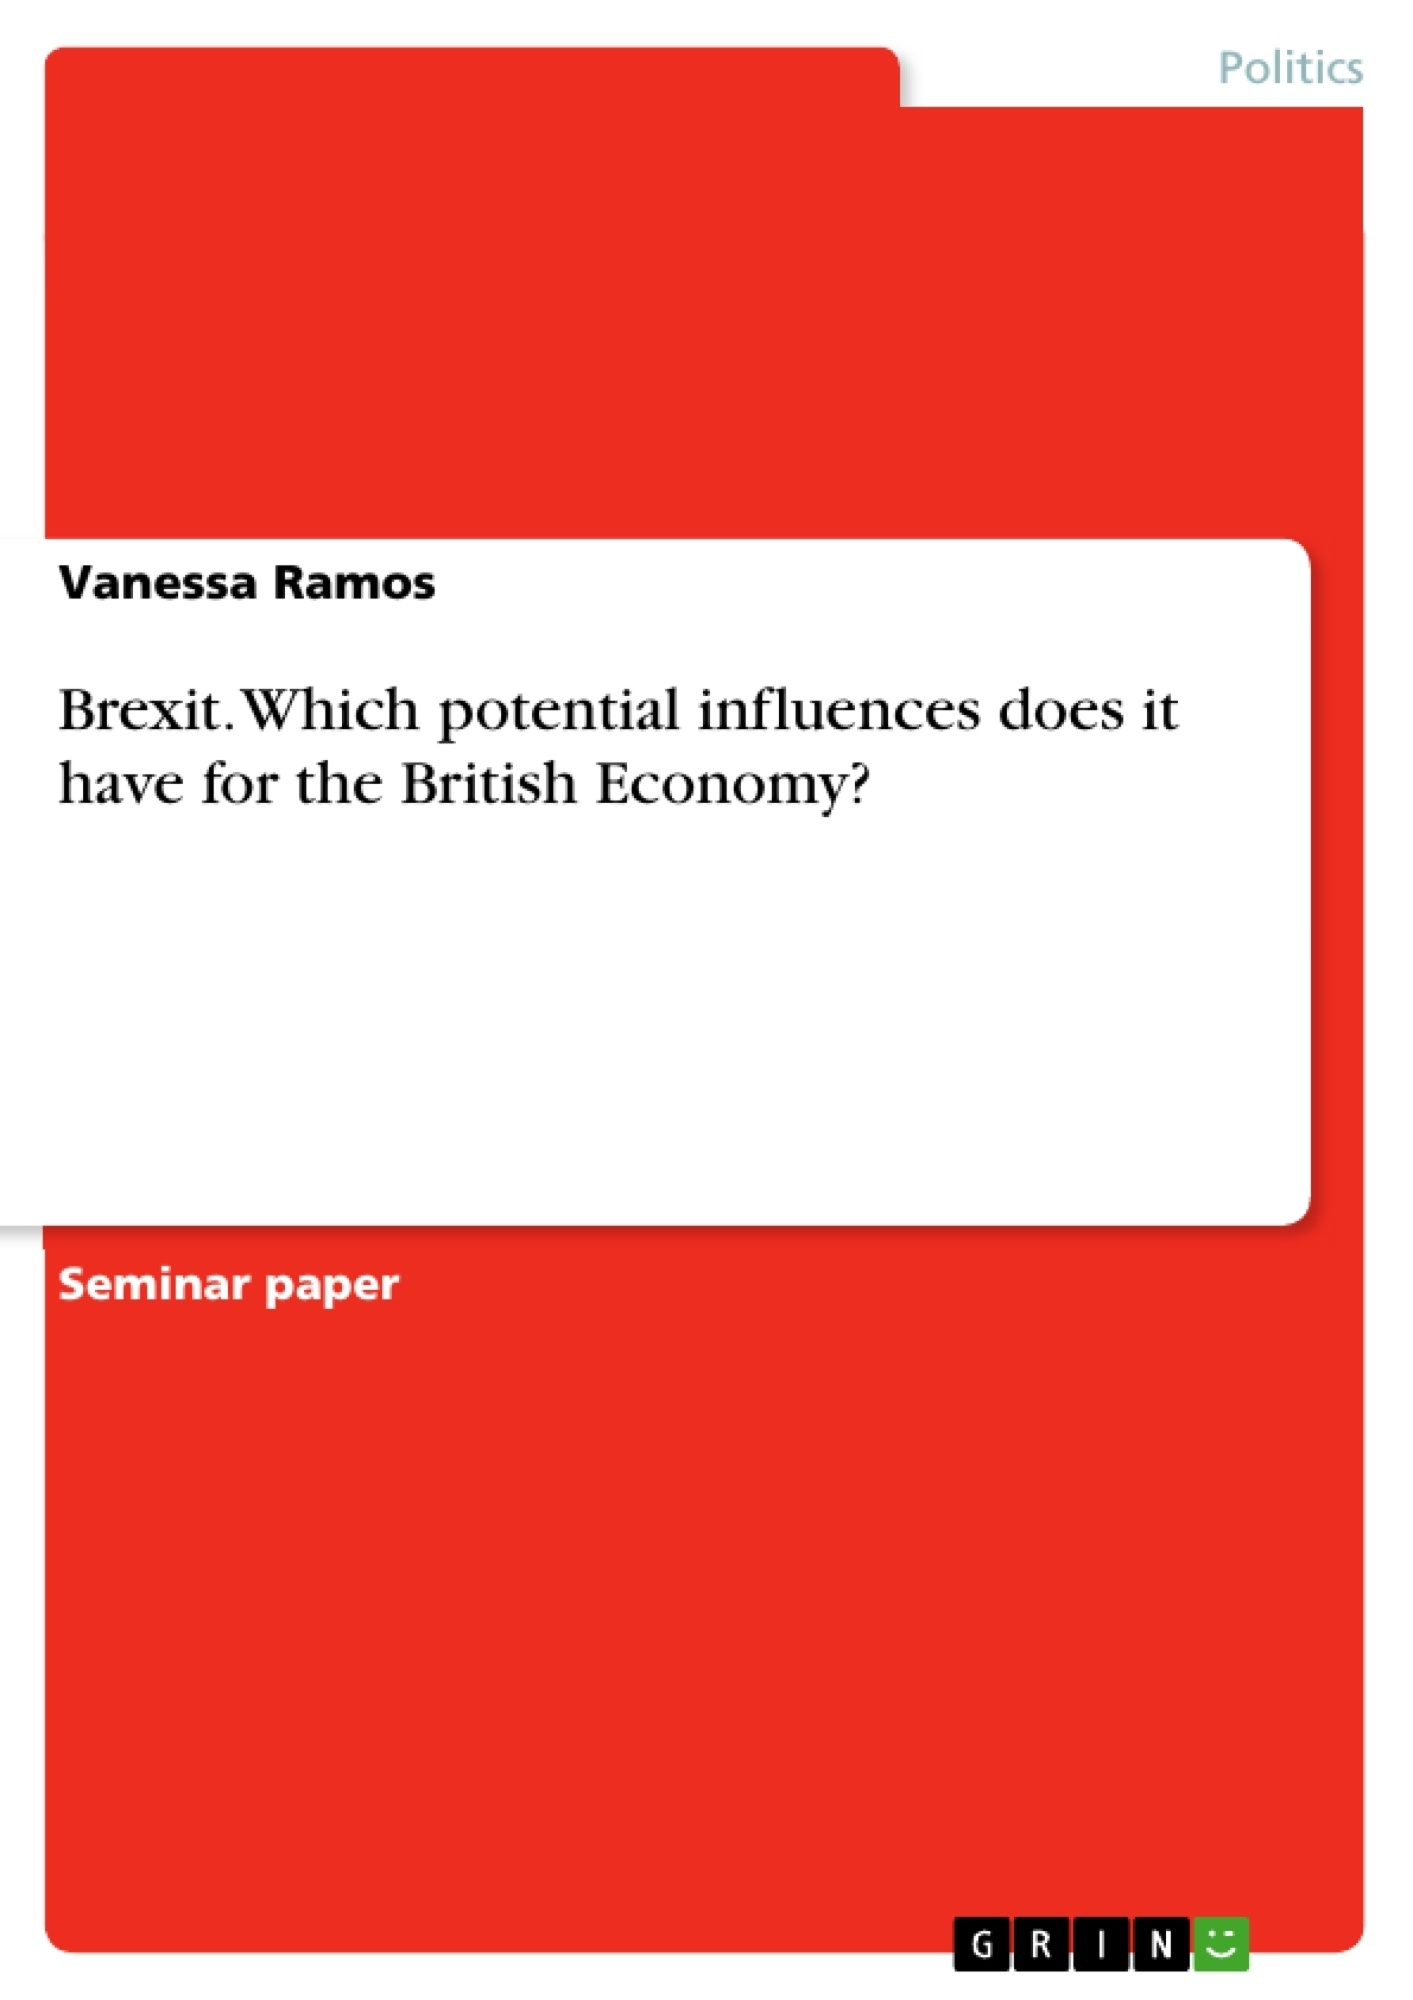 Title: Brexit. Which potential influences does it have for the British Economy?